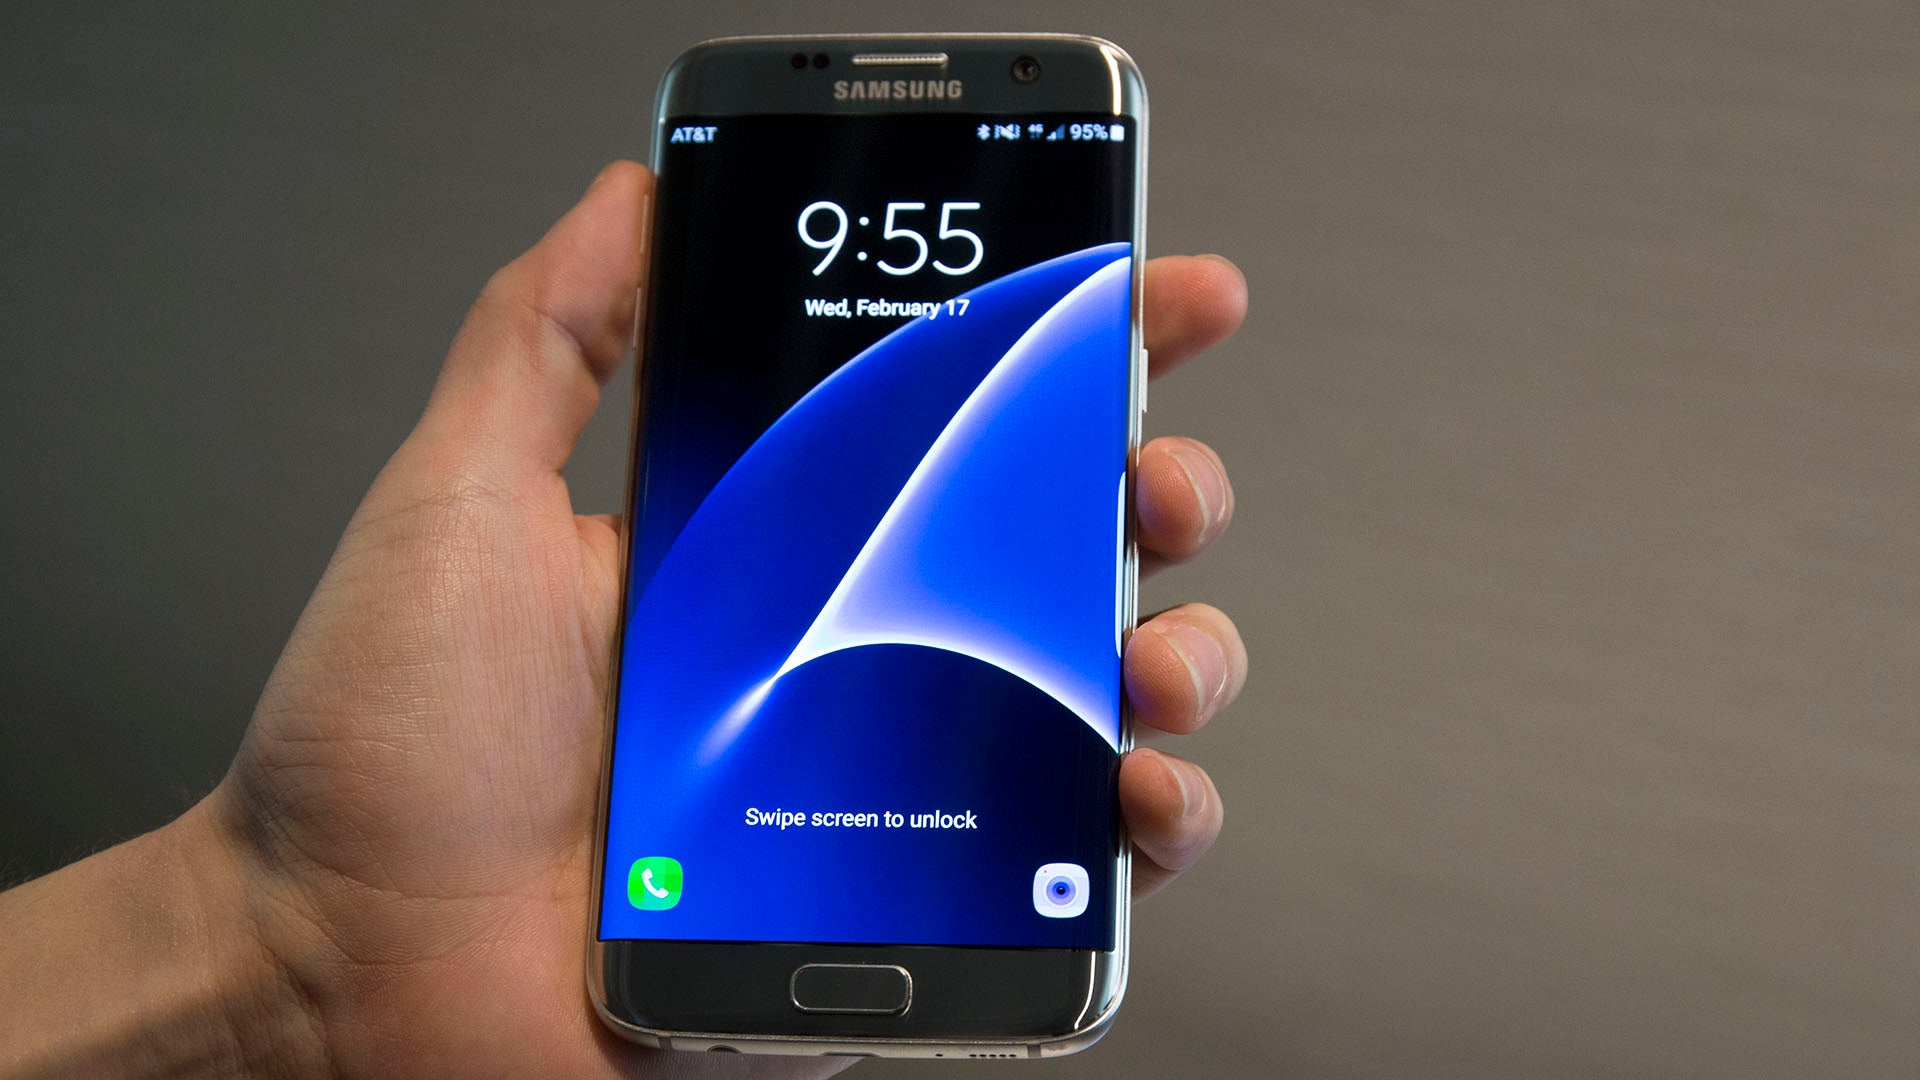 Galaxy S7 Hands-On: The Six Things You Need to Know